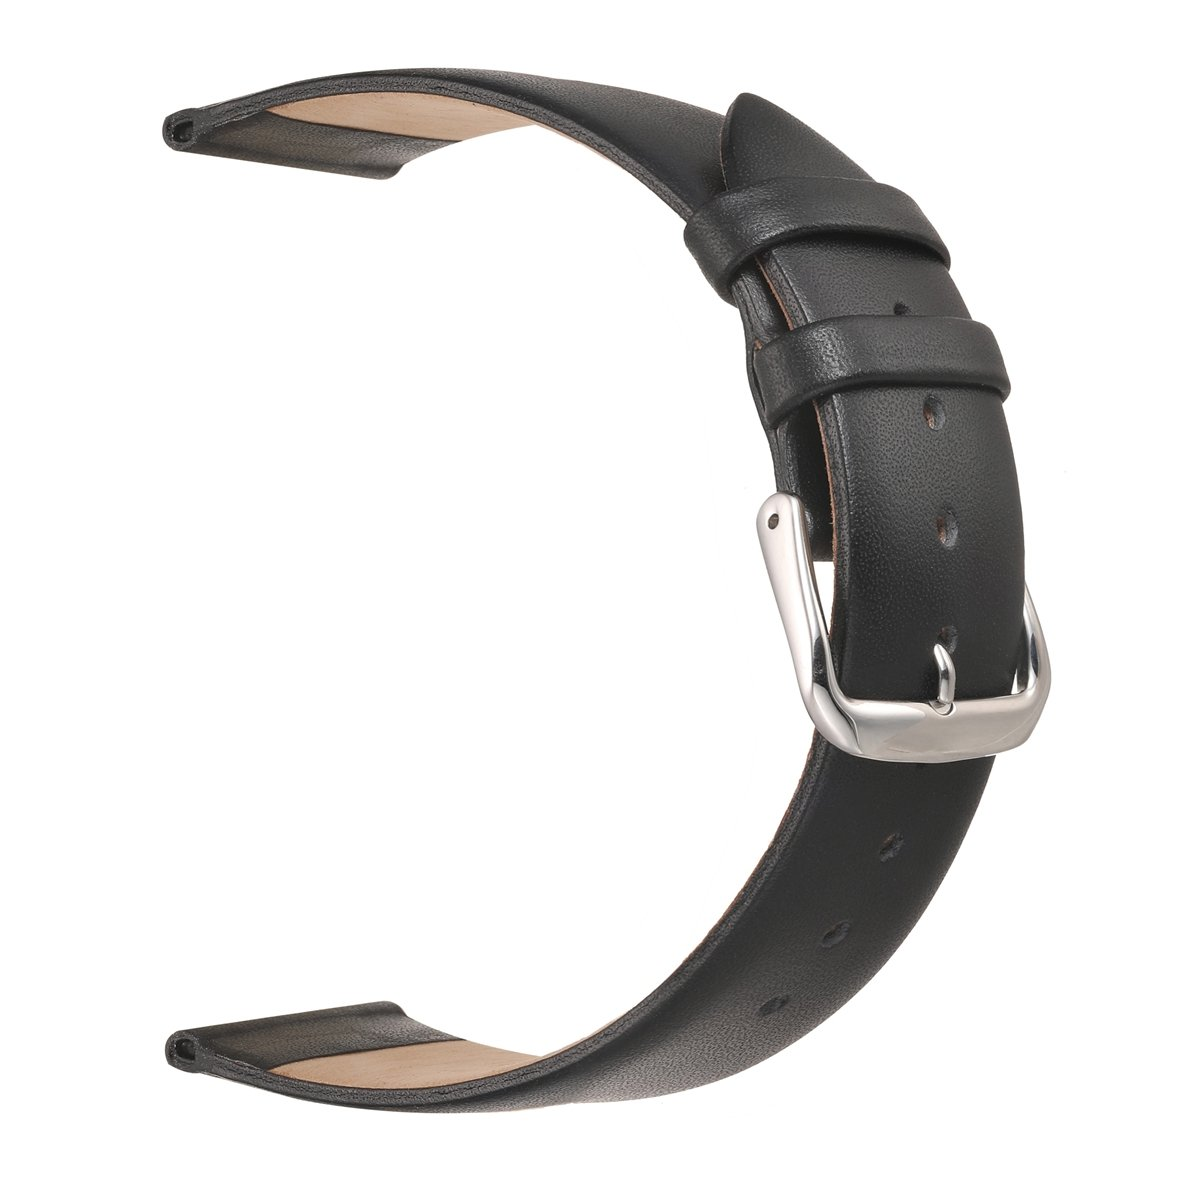 Classical Ultra Thin Leather Watch Bands EACHE Genuine Leather Watch Straps for Women 12mm 14mm 16mm 18mm 20mm